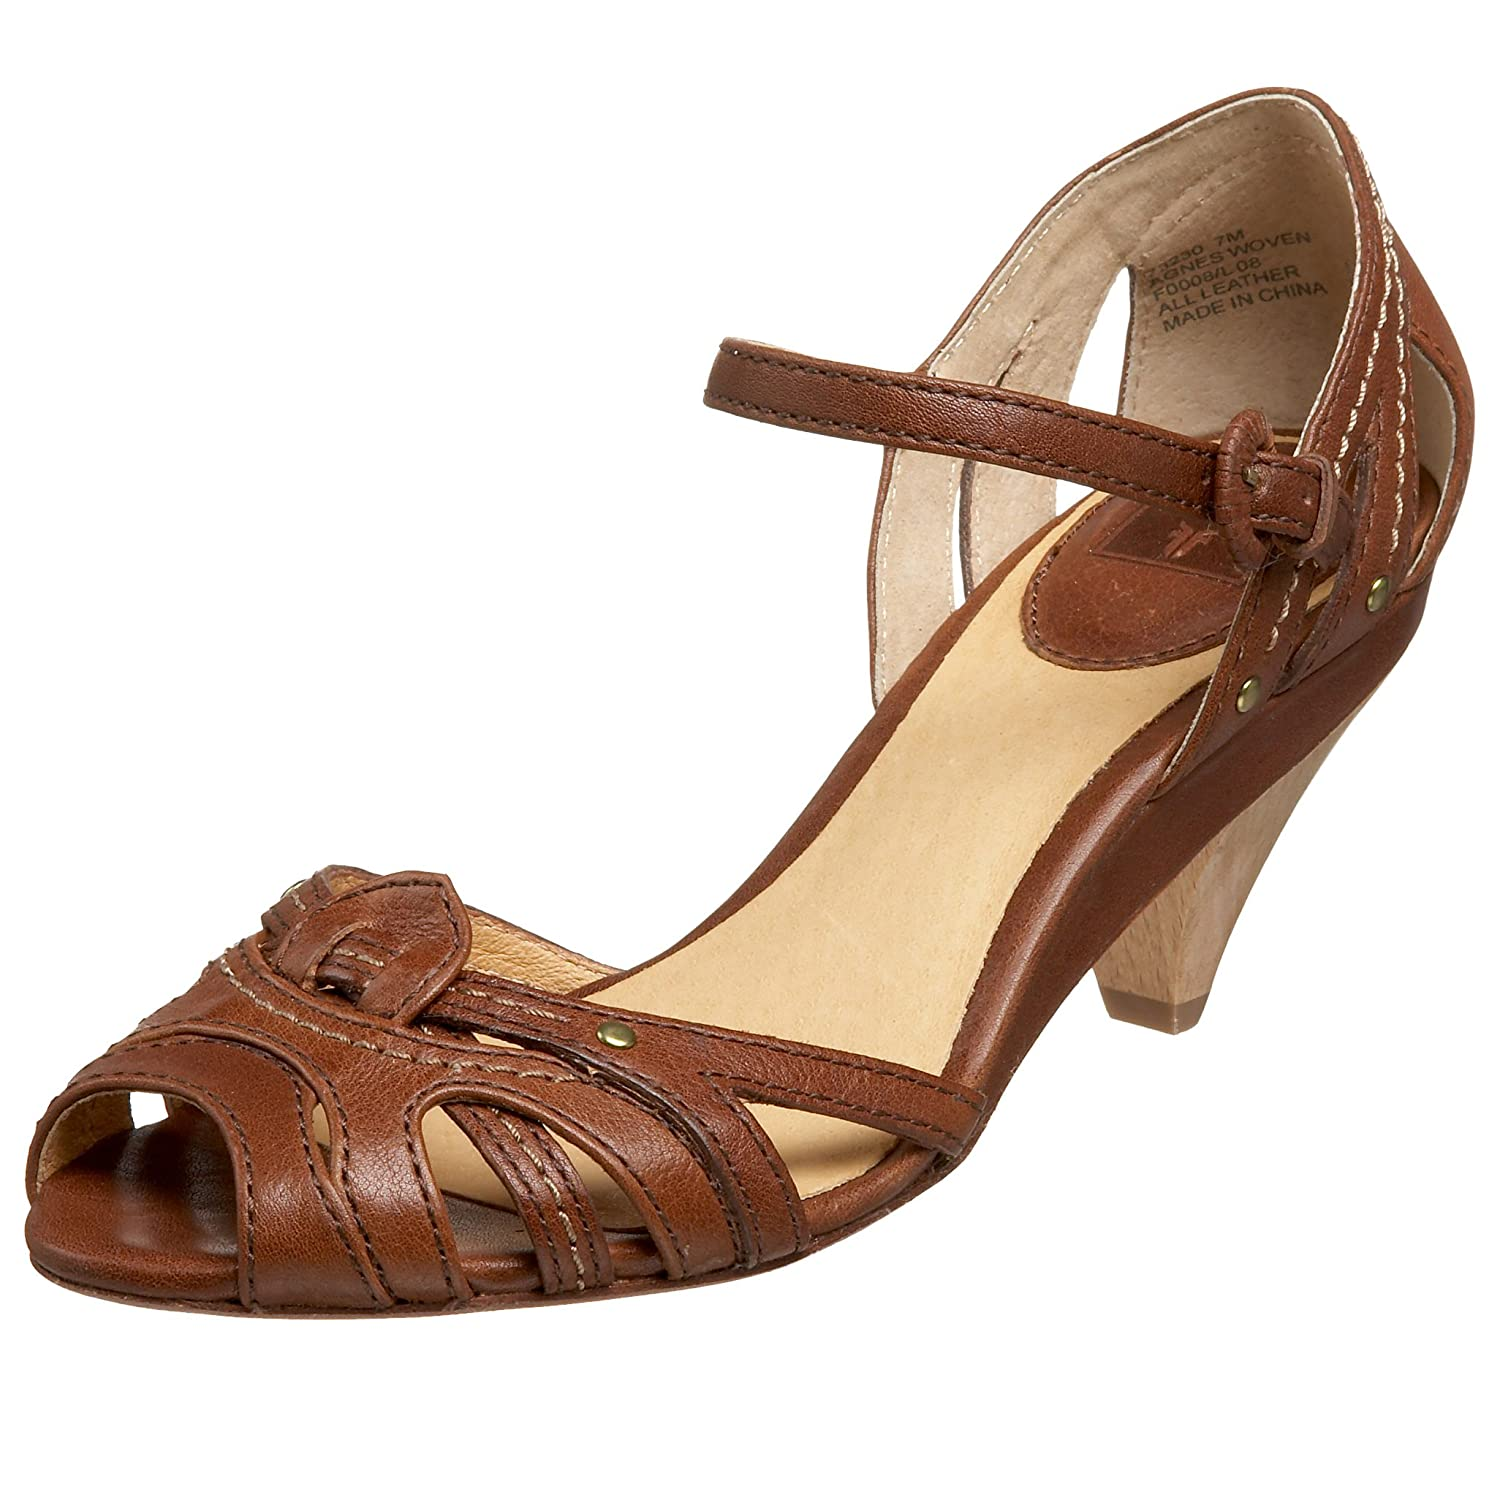 FRYE Women's Agnes Ankle Strap Heel - Free Overnight Shipping & Return Shipping: Endless.com